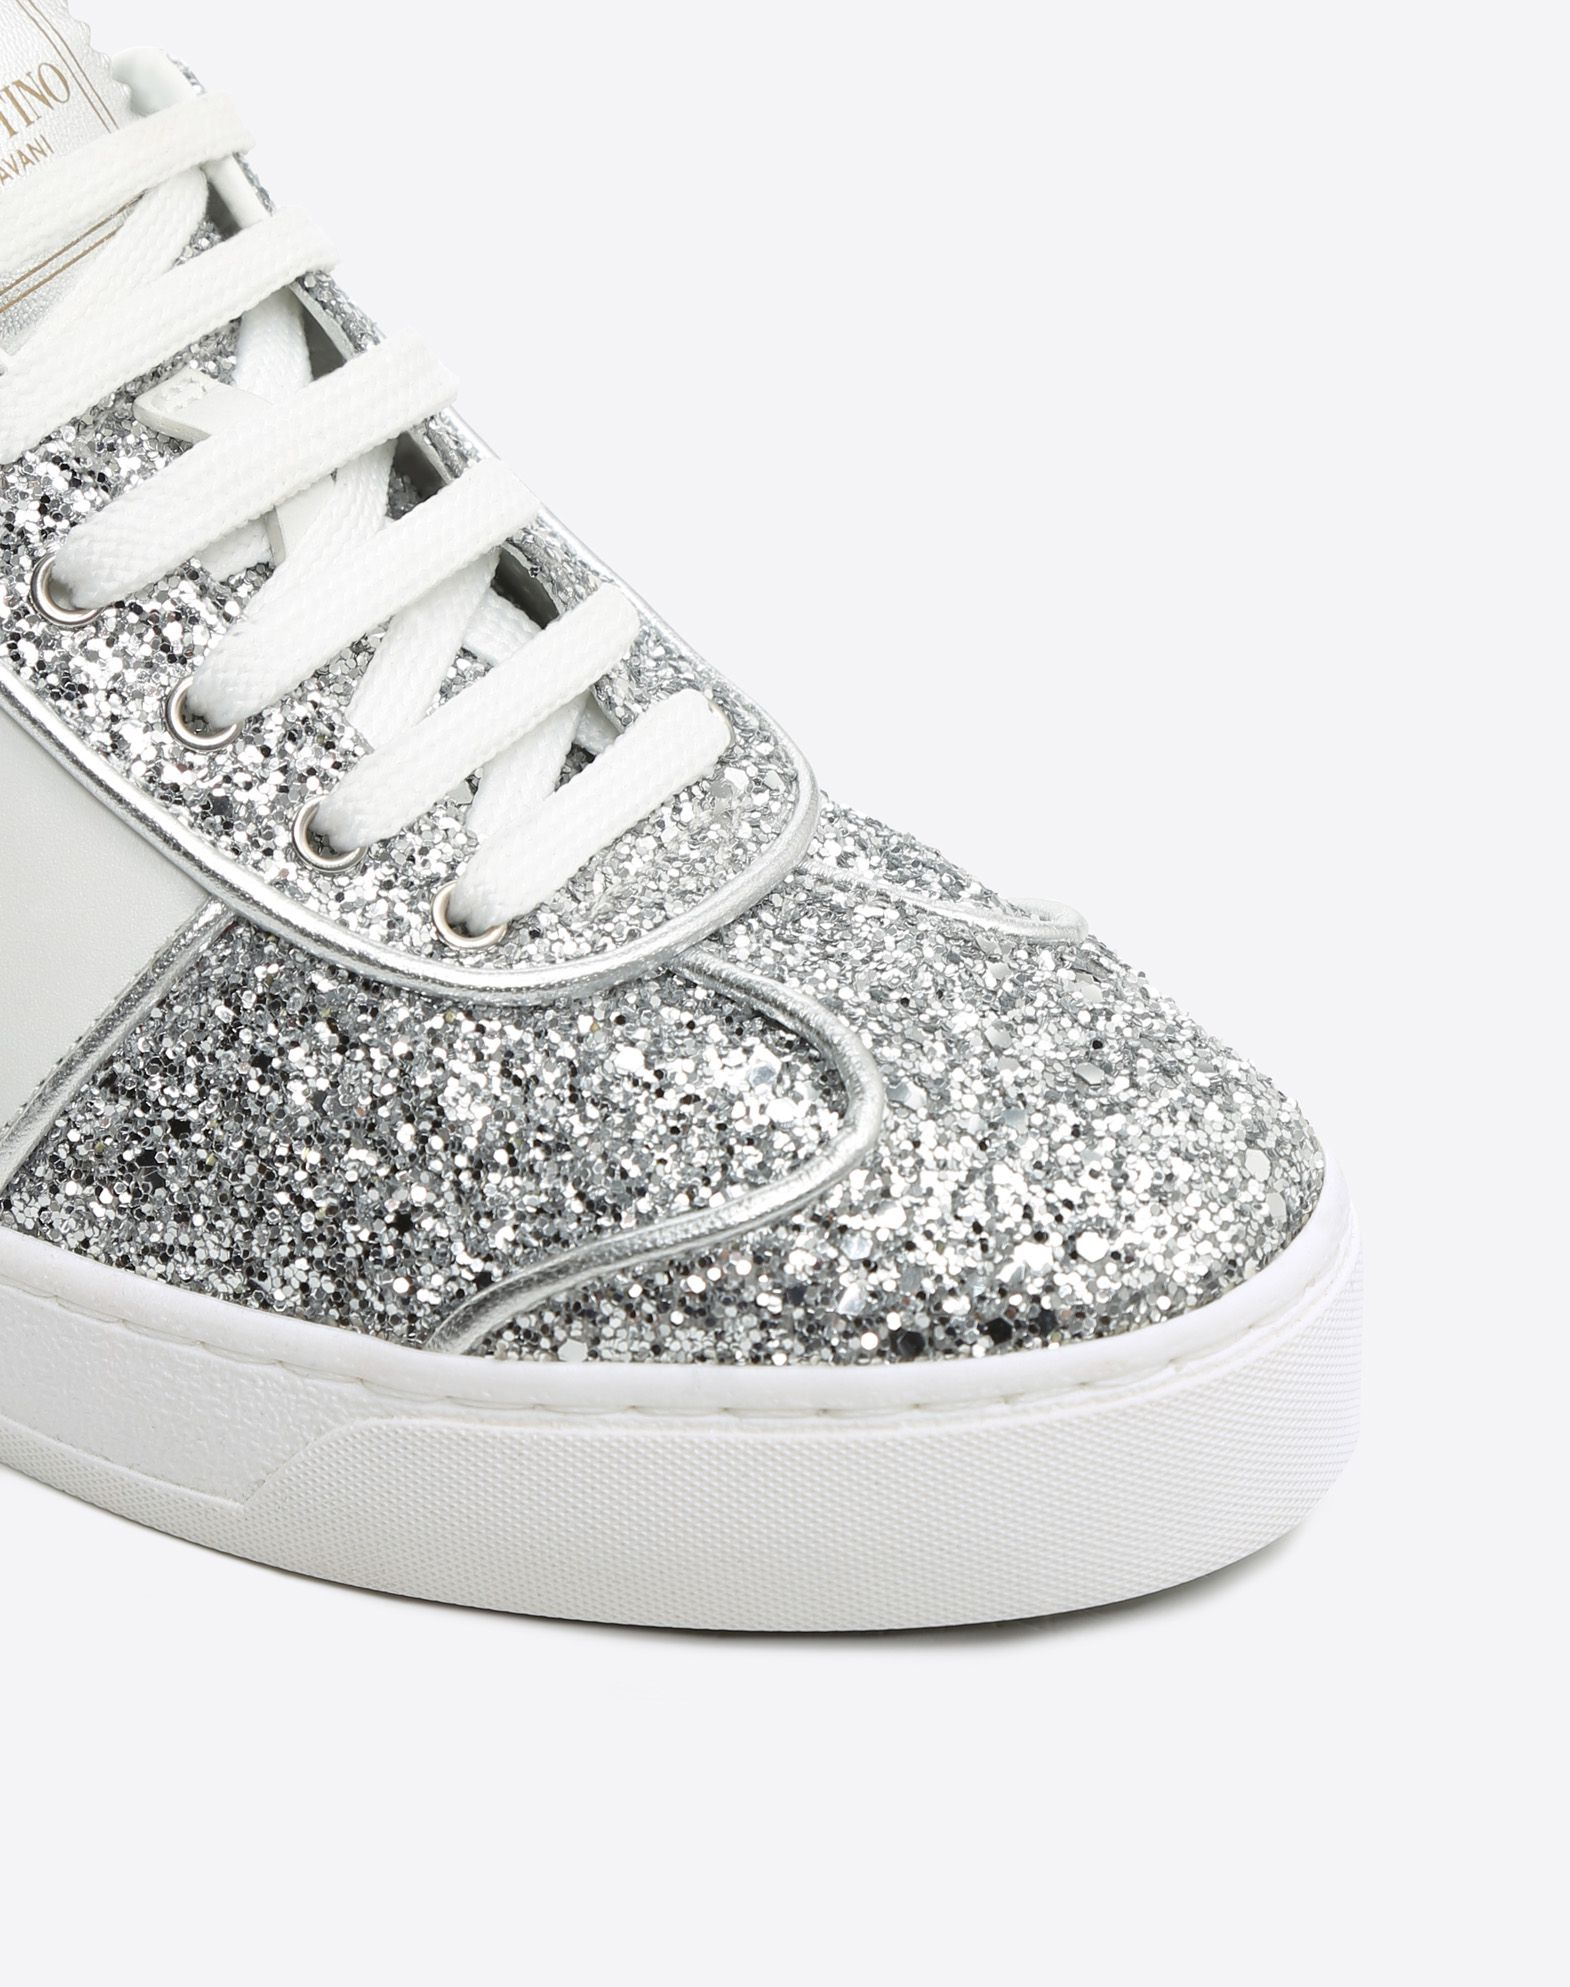 Valentino Glitter Sneaker Clearance Cheapest Discount Cheap Online High Quality wdAybClaBg